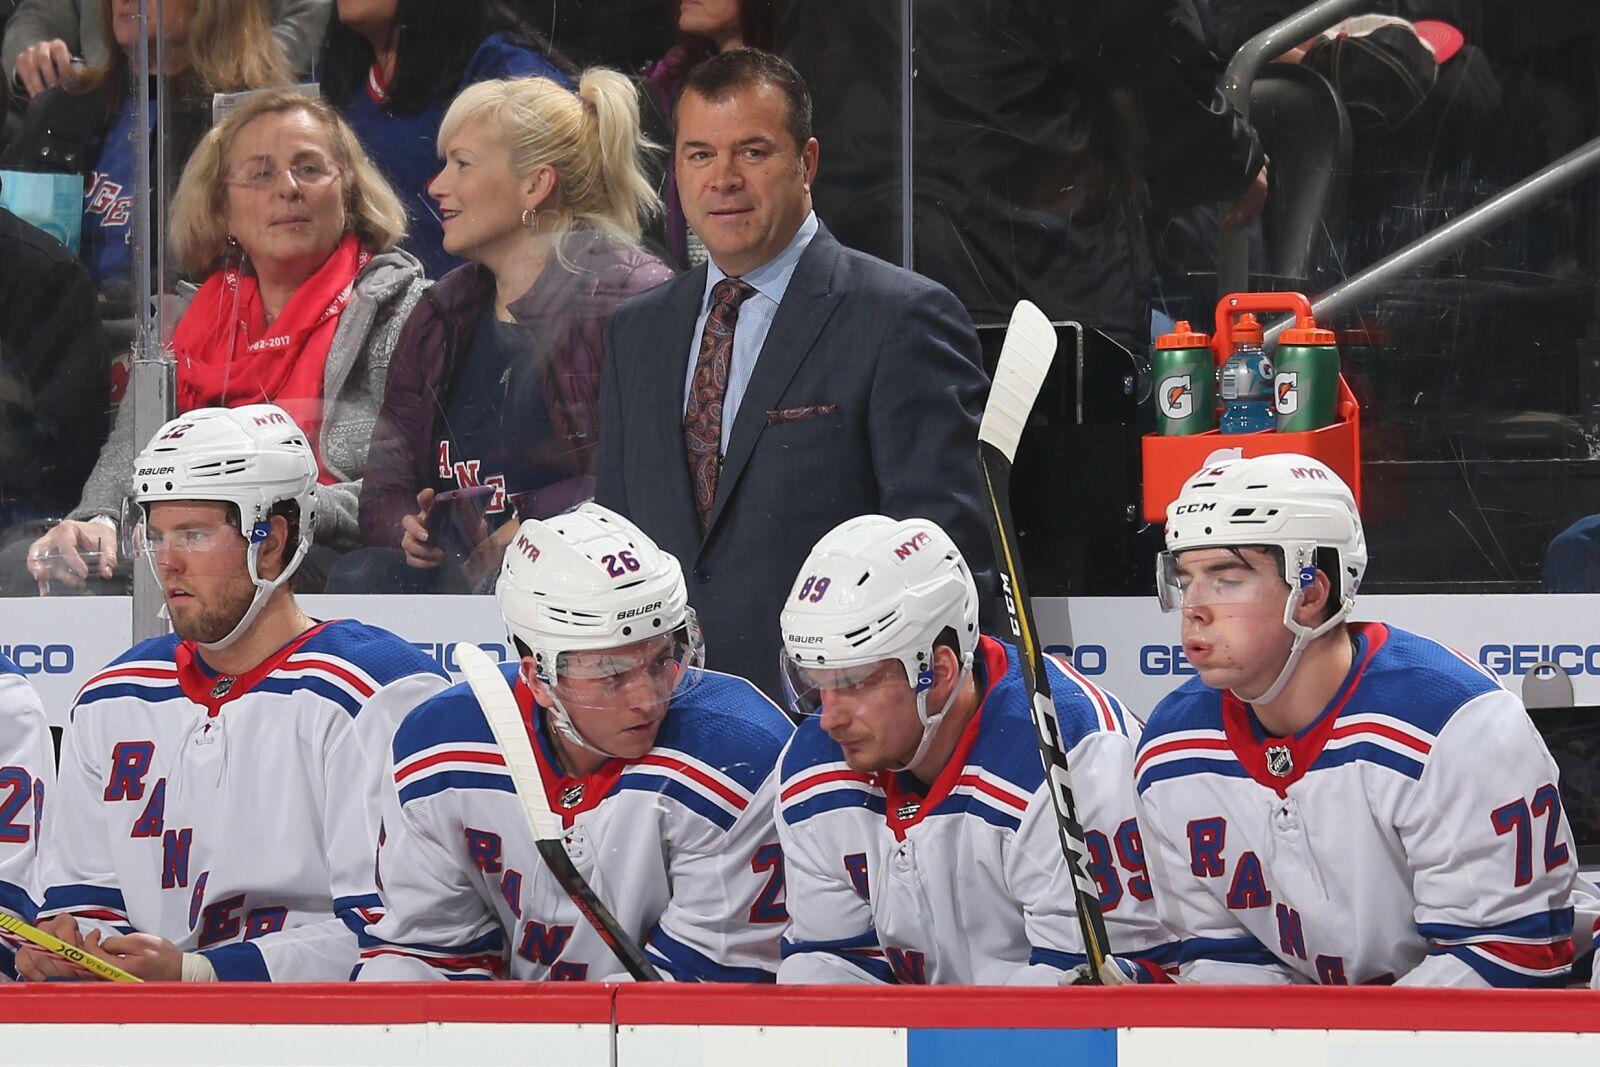 New York Rangers: A year later, the coaching retread machine continues